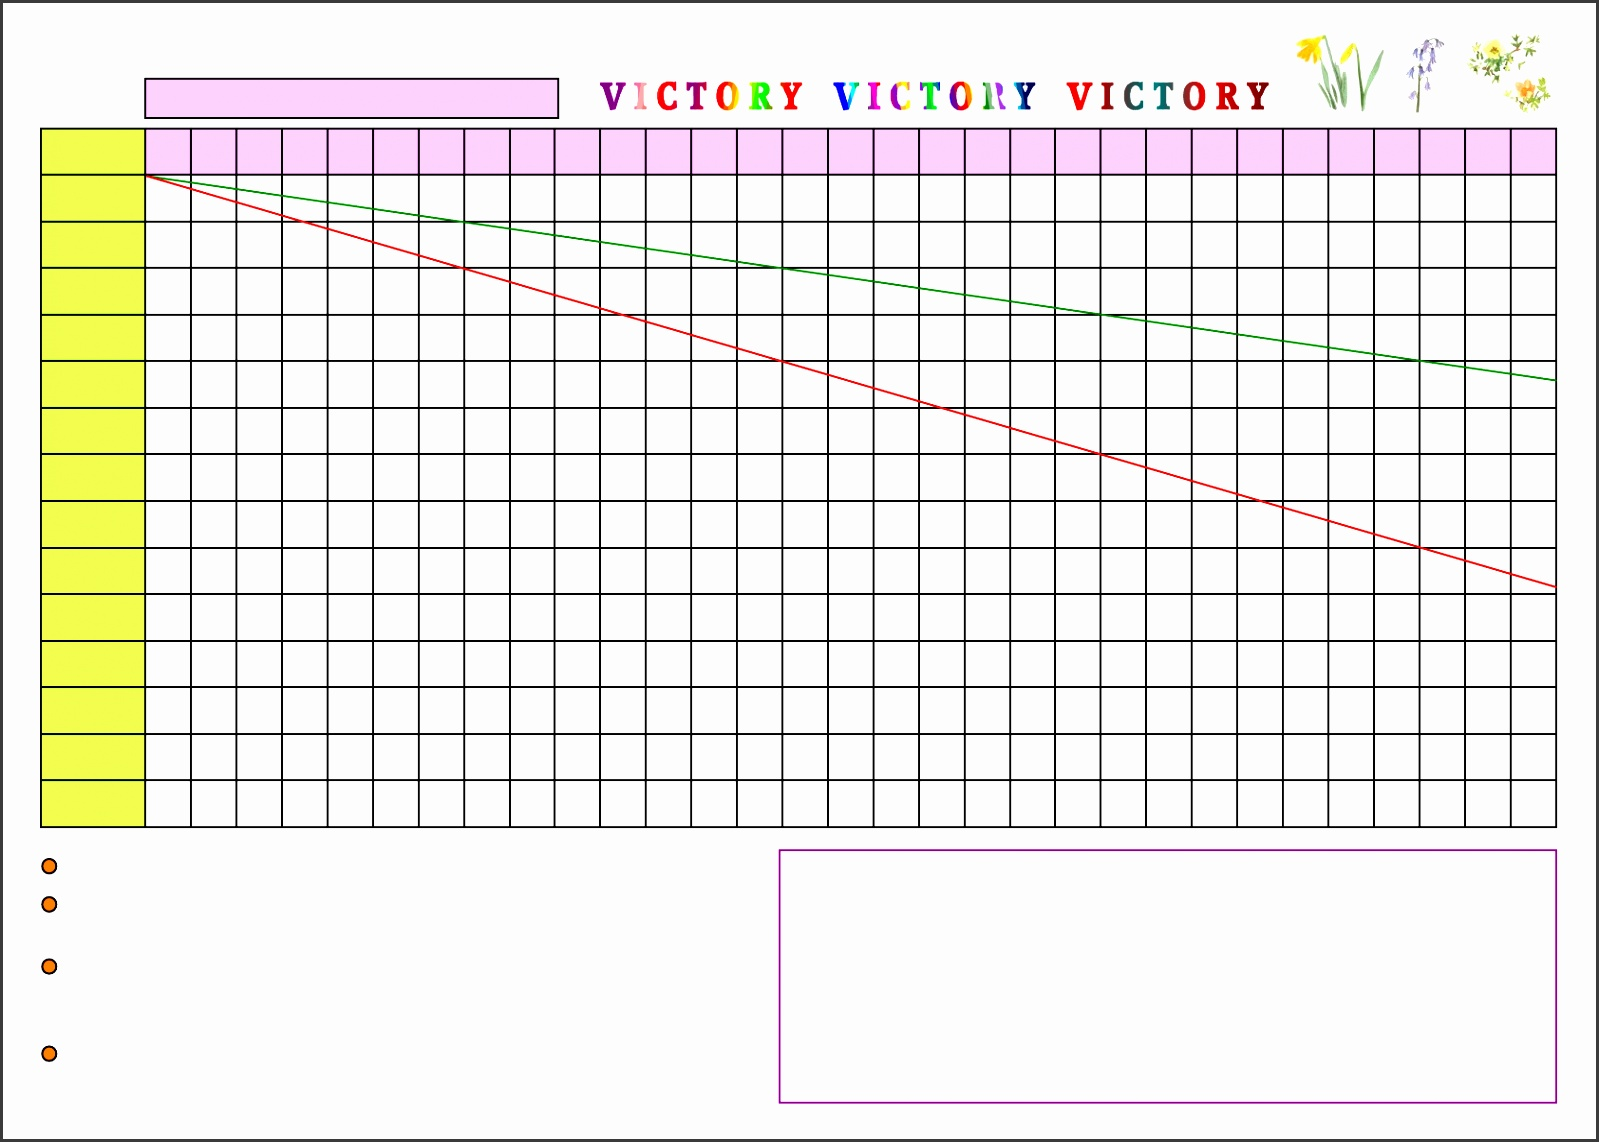 Weight loss chart template Free